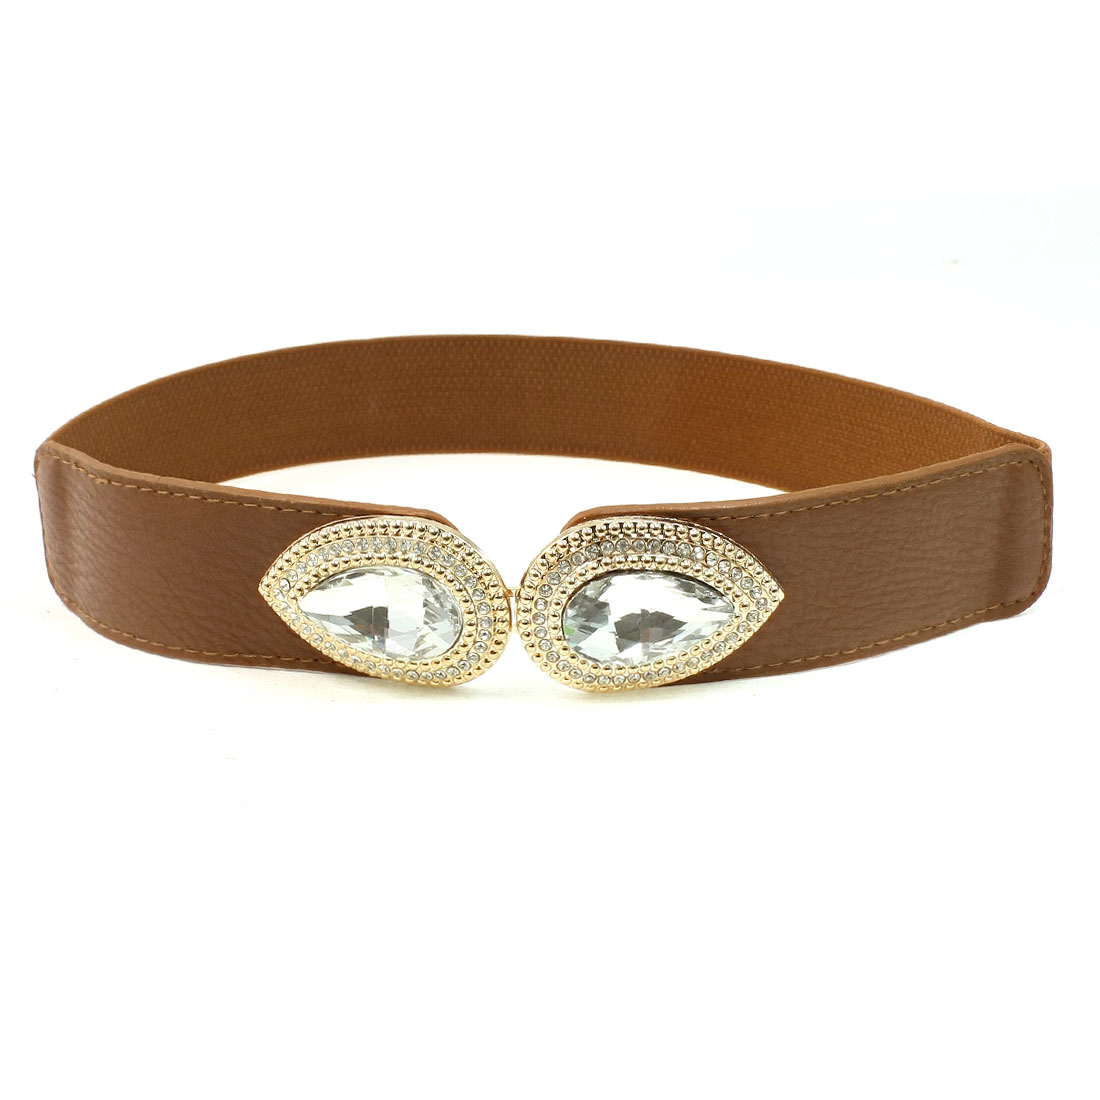 Faceted Crystal Accent Interlocking Buckle Wide Elastic Belt Brown for Women